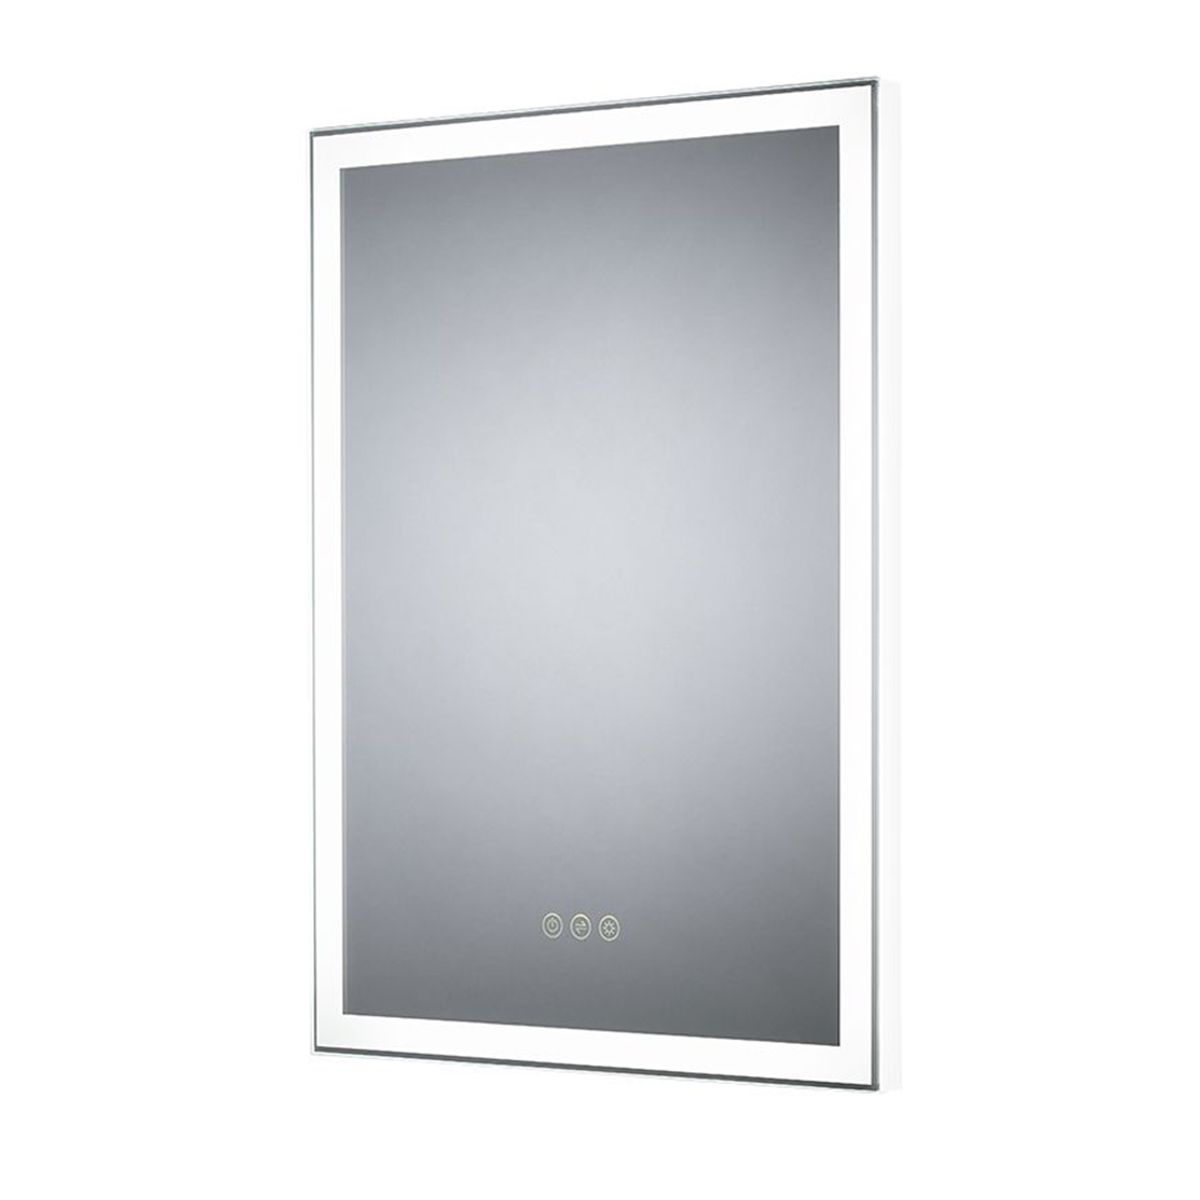 Sensio Destiny Dimmable LED Mirror with Demister Pad SE30771C0